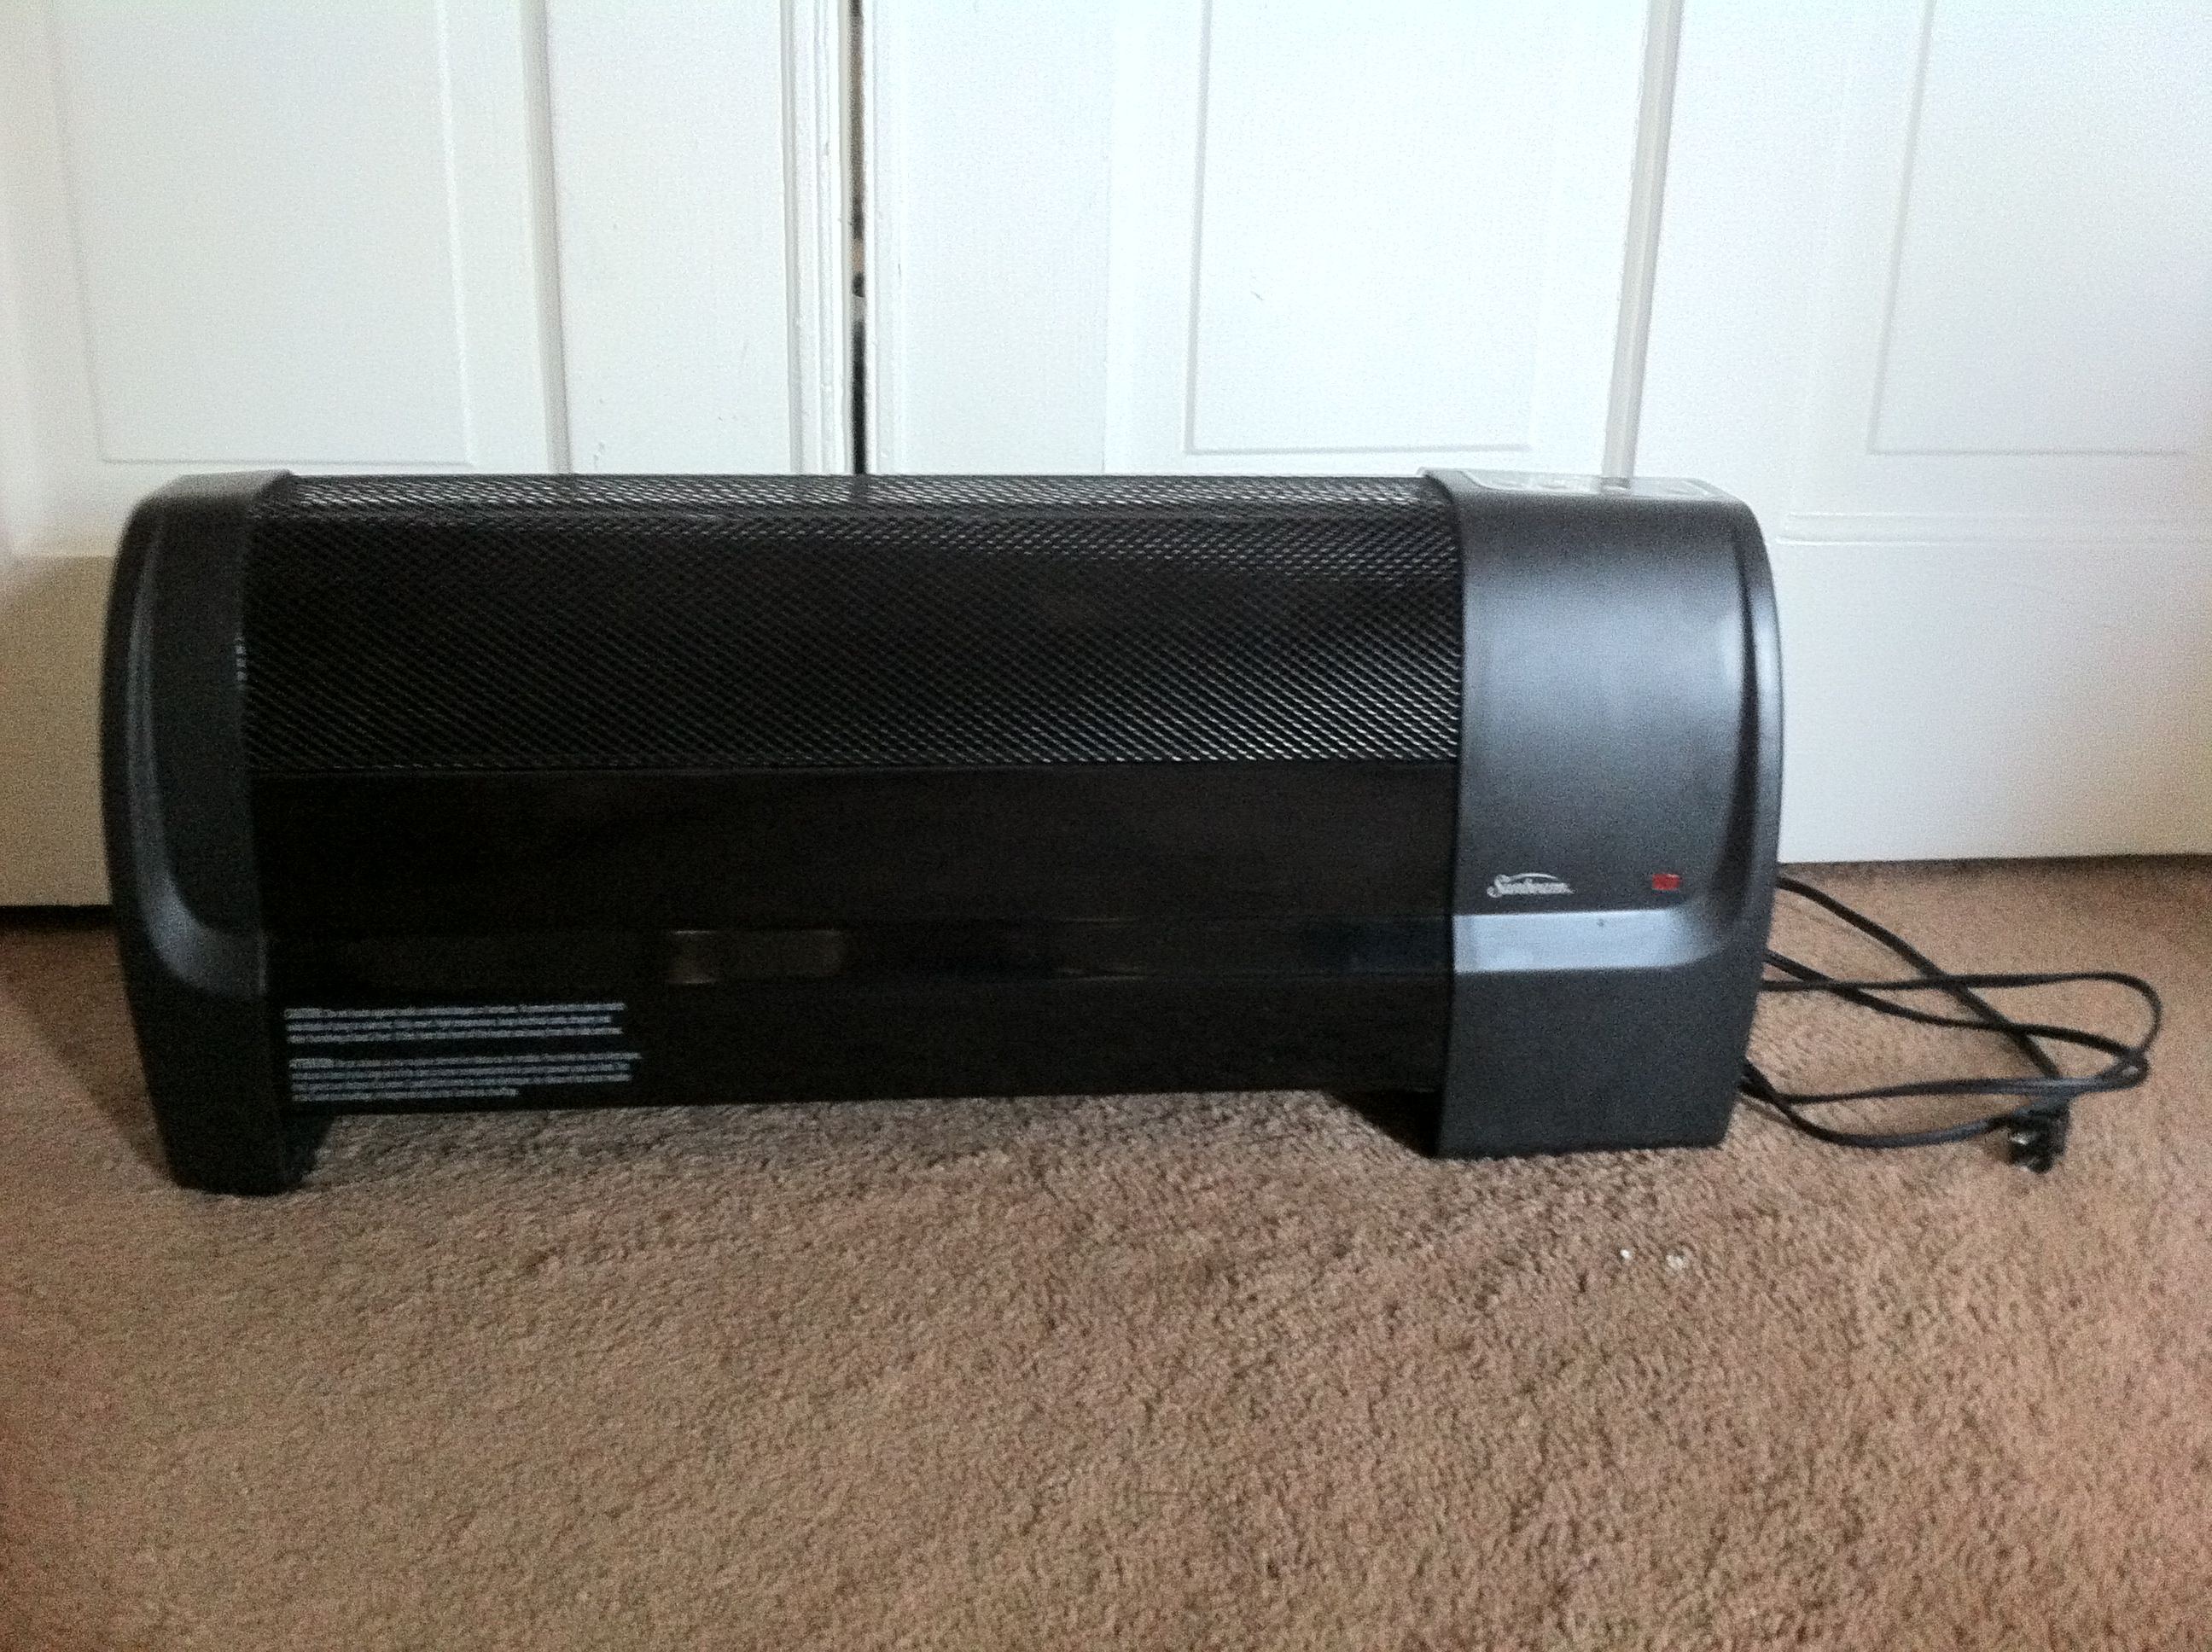 Sunbeam electric heater. Has temperature settings and an off timer. $35  http://www.canadiantire.ca/en/home/heating-air-conditioning/portable-heating/sunbeam-low-profile-convection-heater-0435908p.html?utm_campaign=bazaarvoice&utm_medium=SearchVoice&utm_source=RatingsAndReviews&utm_content=Default#.U4v0vHJdVIE